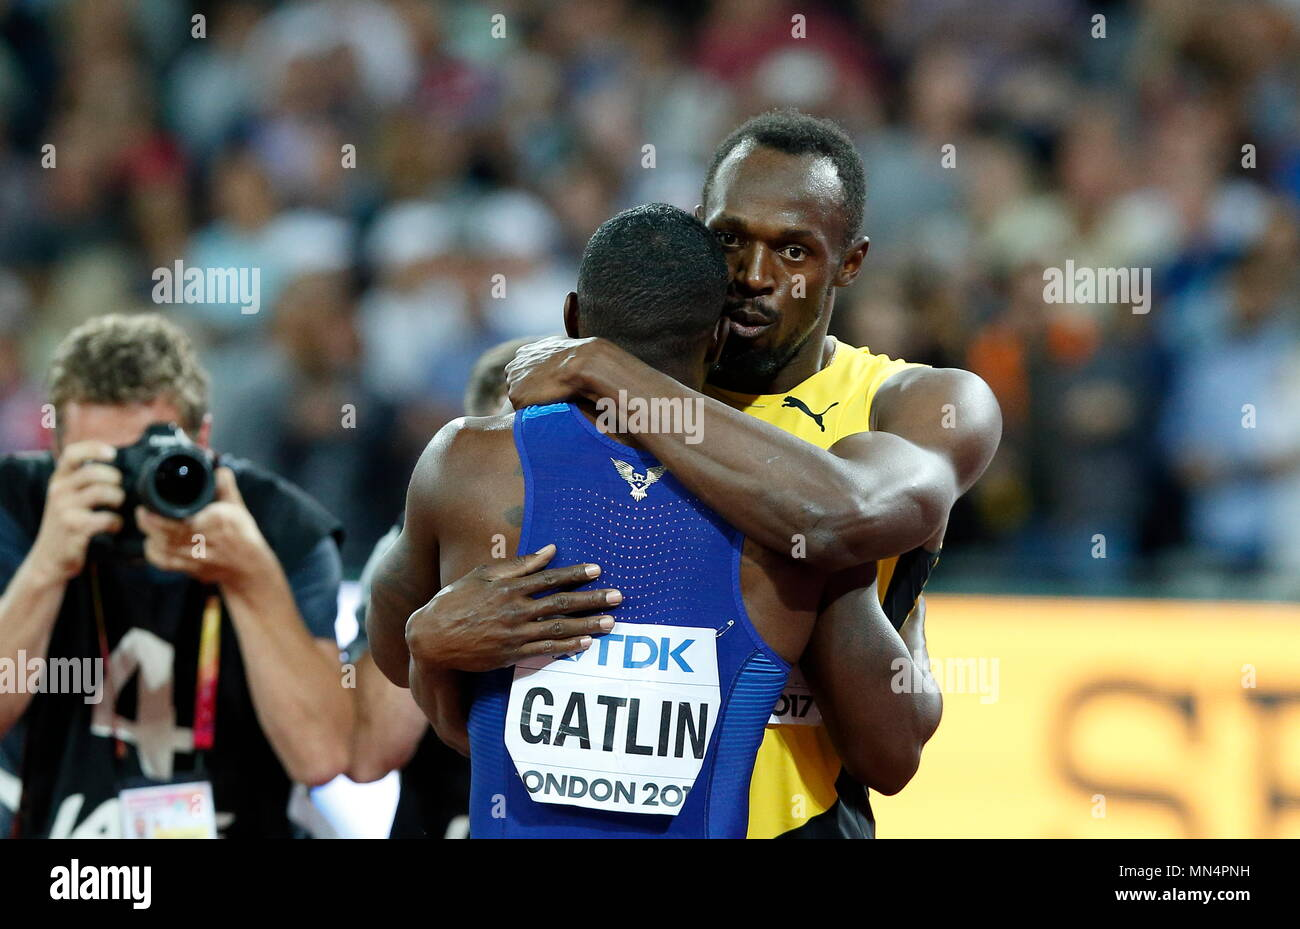 LONDON, ENGLAND - AUGUST 05: Usain Bolt having run his last 100m race embraces the winner of the Mens 100m Final Justin Gatlin during day two of the 16th IAAF World Athletics Championships London 2017 at The London Stadium on August 5, 2017 in London, United Kingdom. Photo by Paul Cunningham - Stock Image